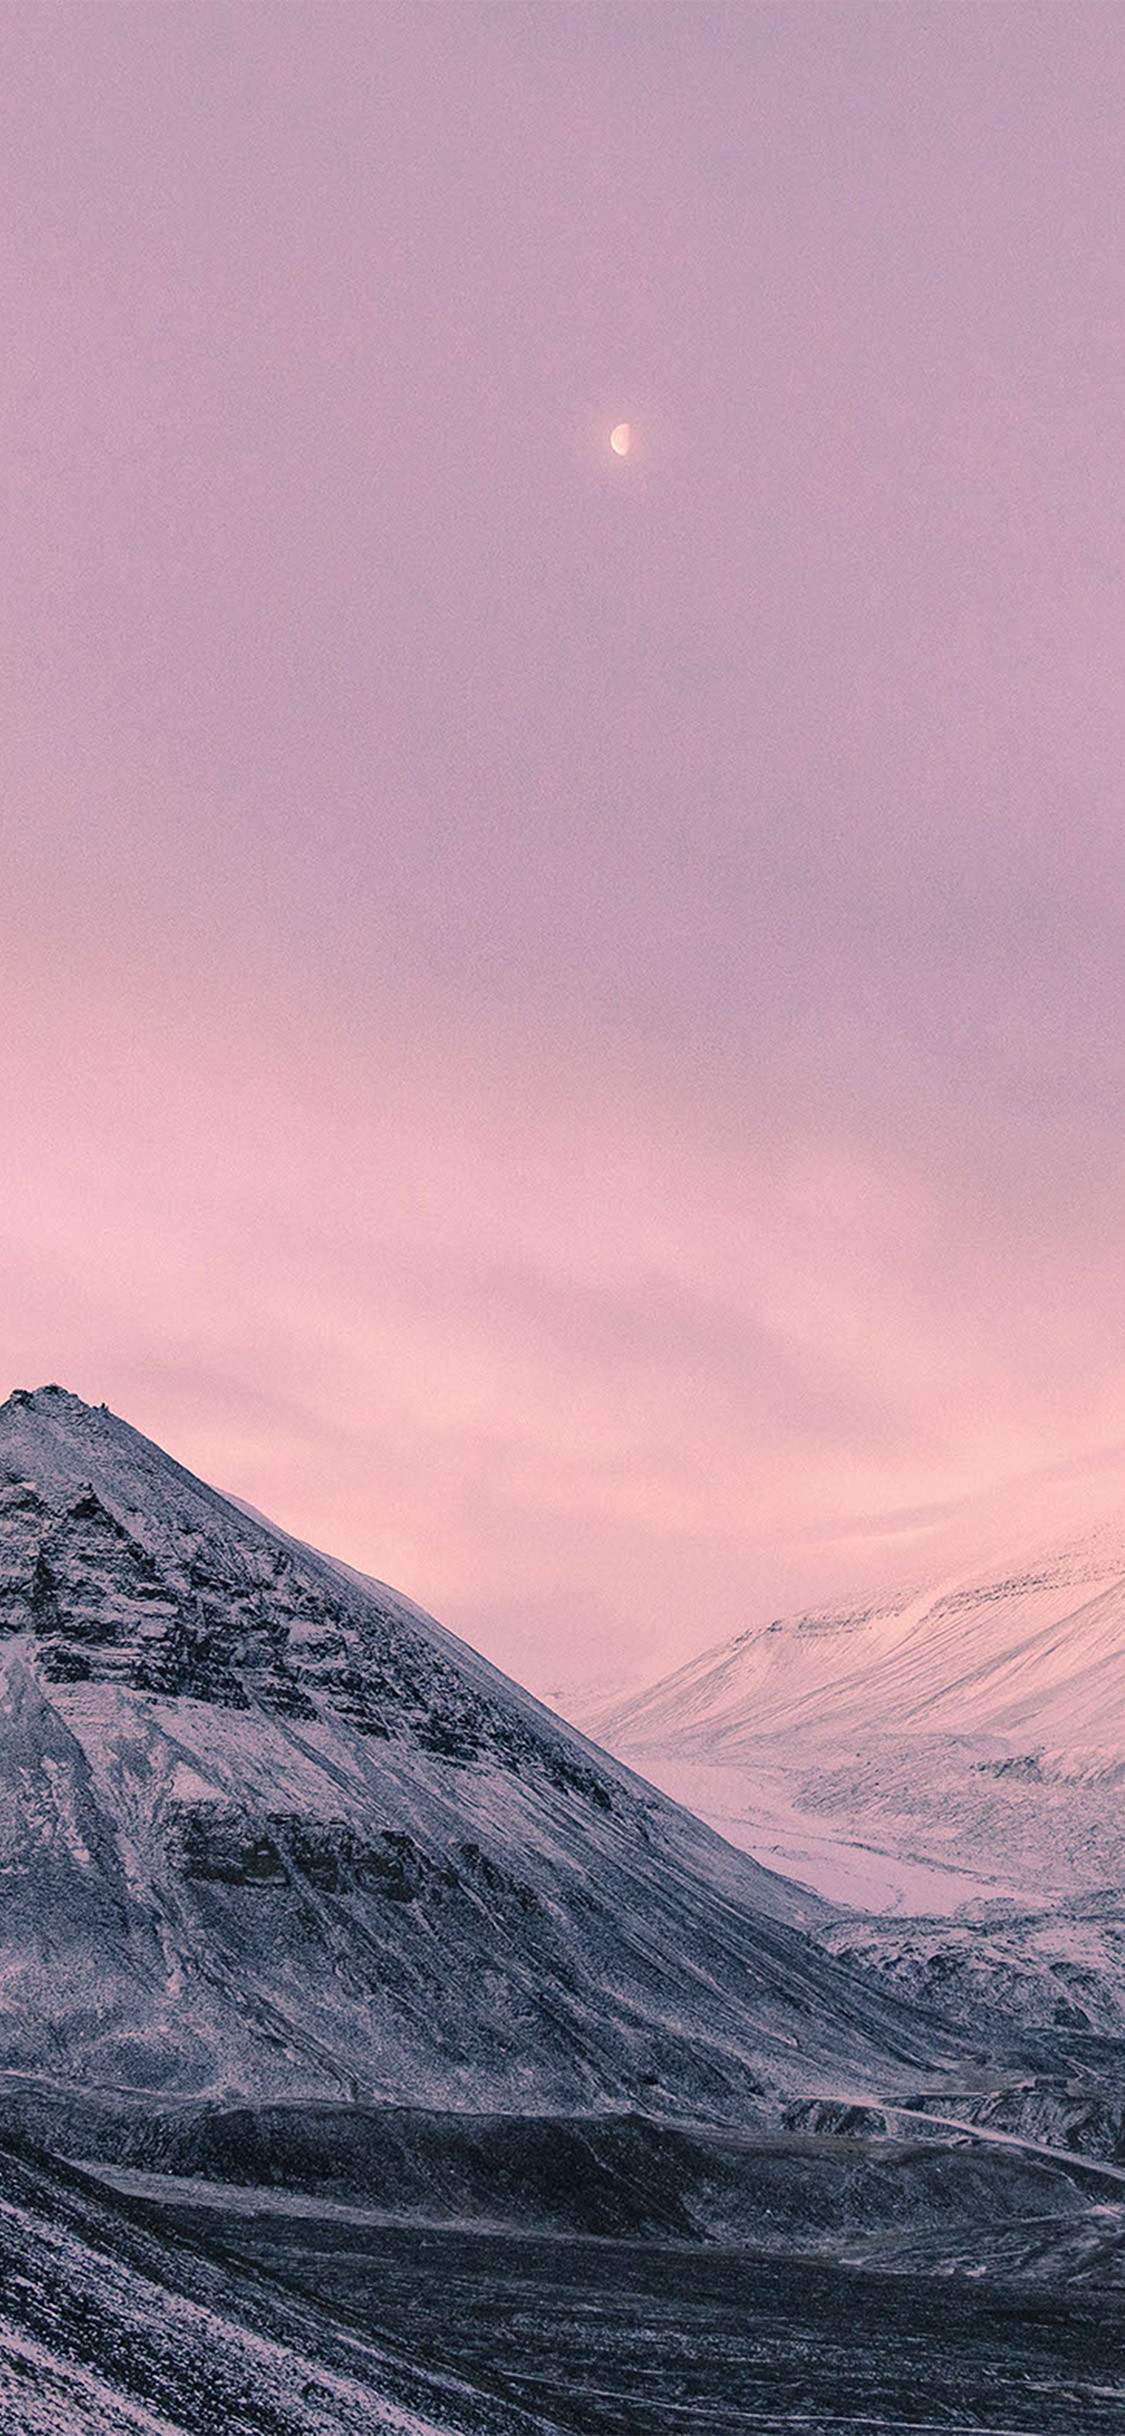 iPhonexpapers.com-Apple-iPhone-wallpaper-nz64-snow-winter-moon-mountain-nature-pink